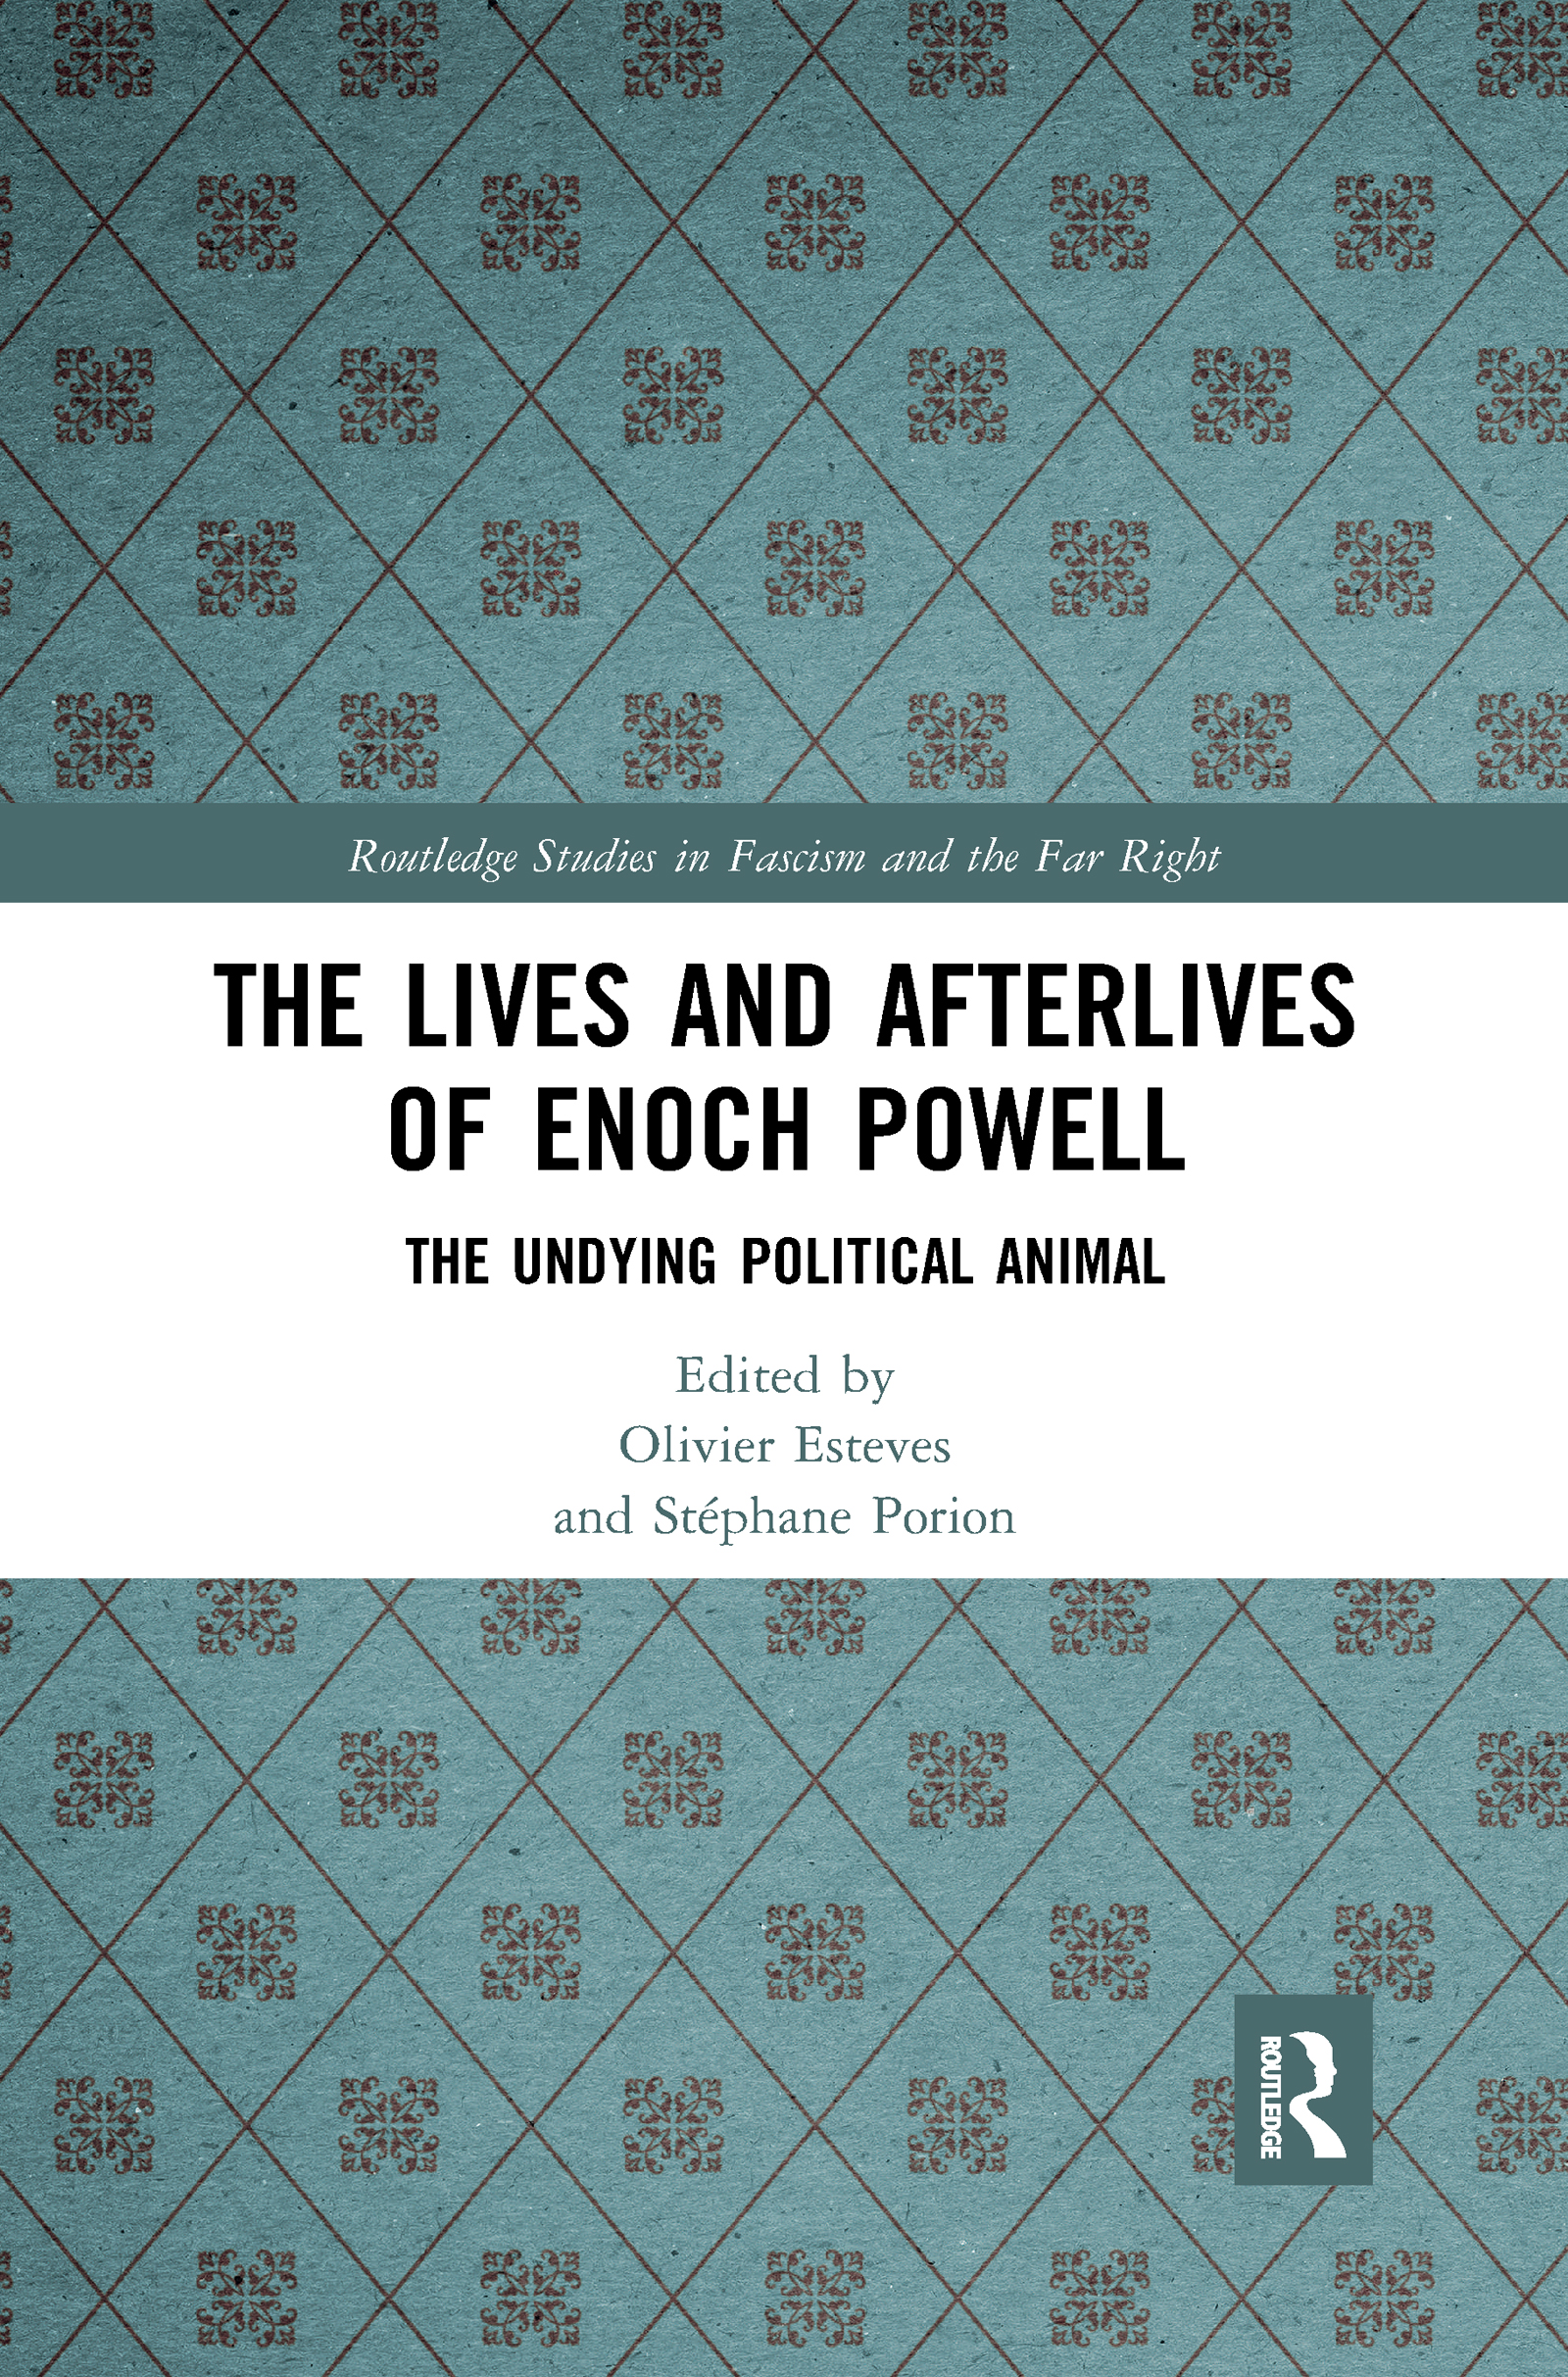 The Lives and Afterlives of Enoch Powell